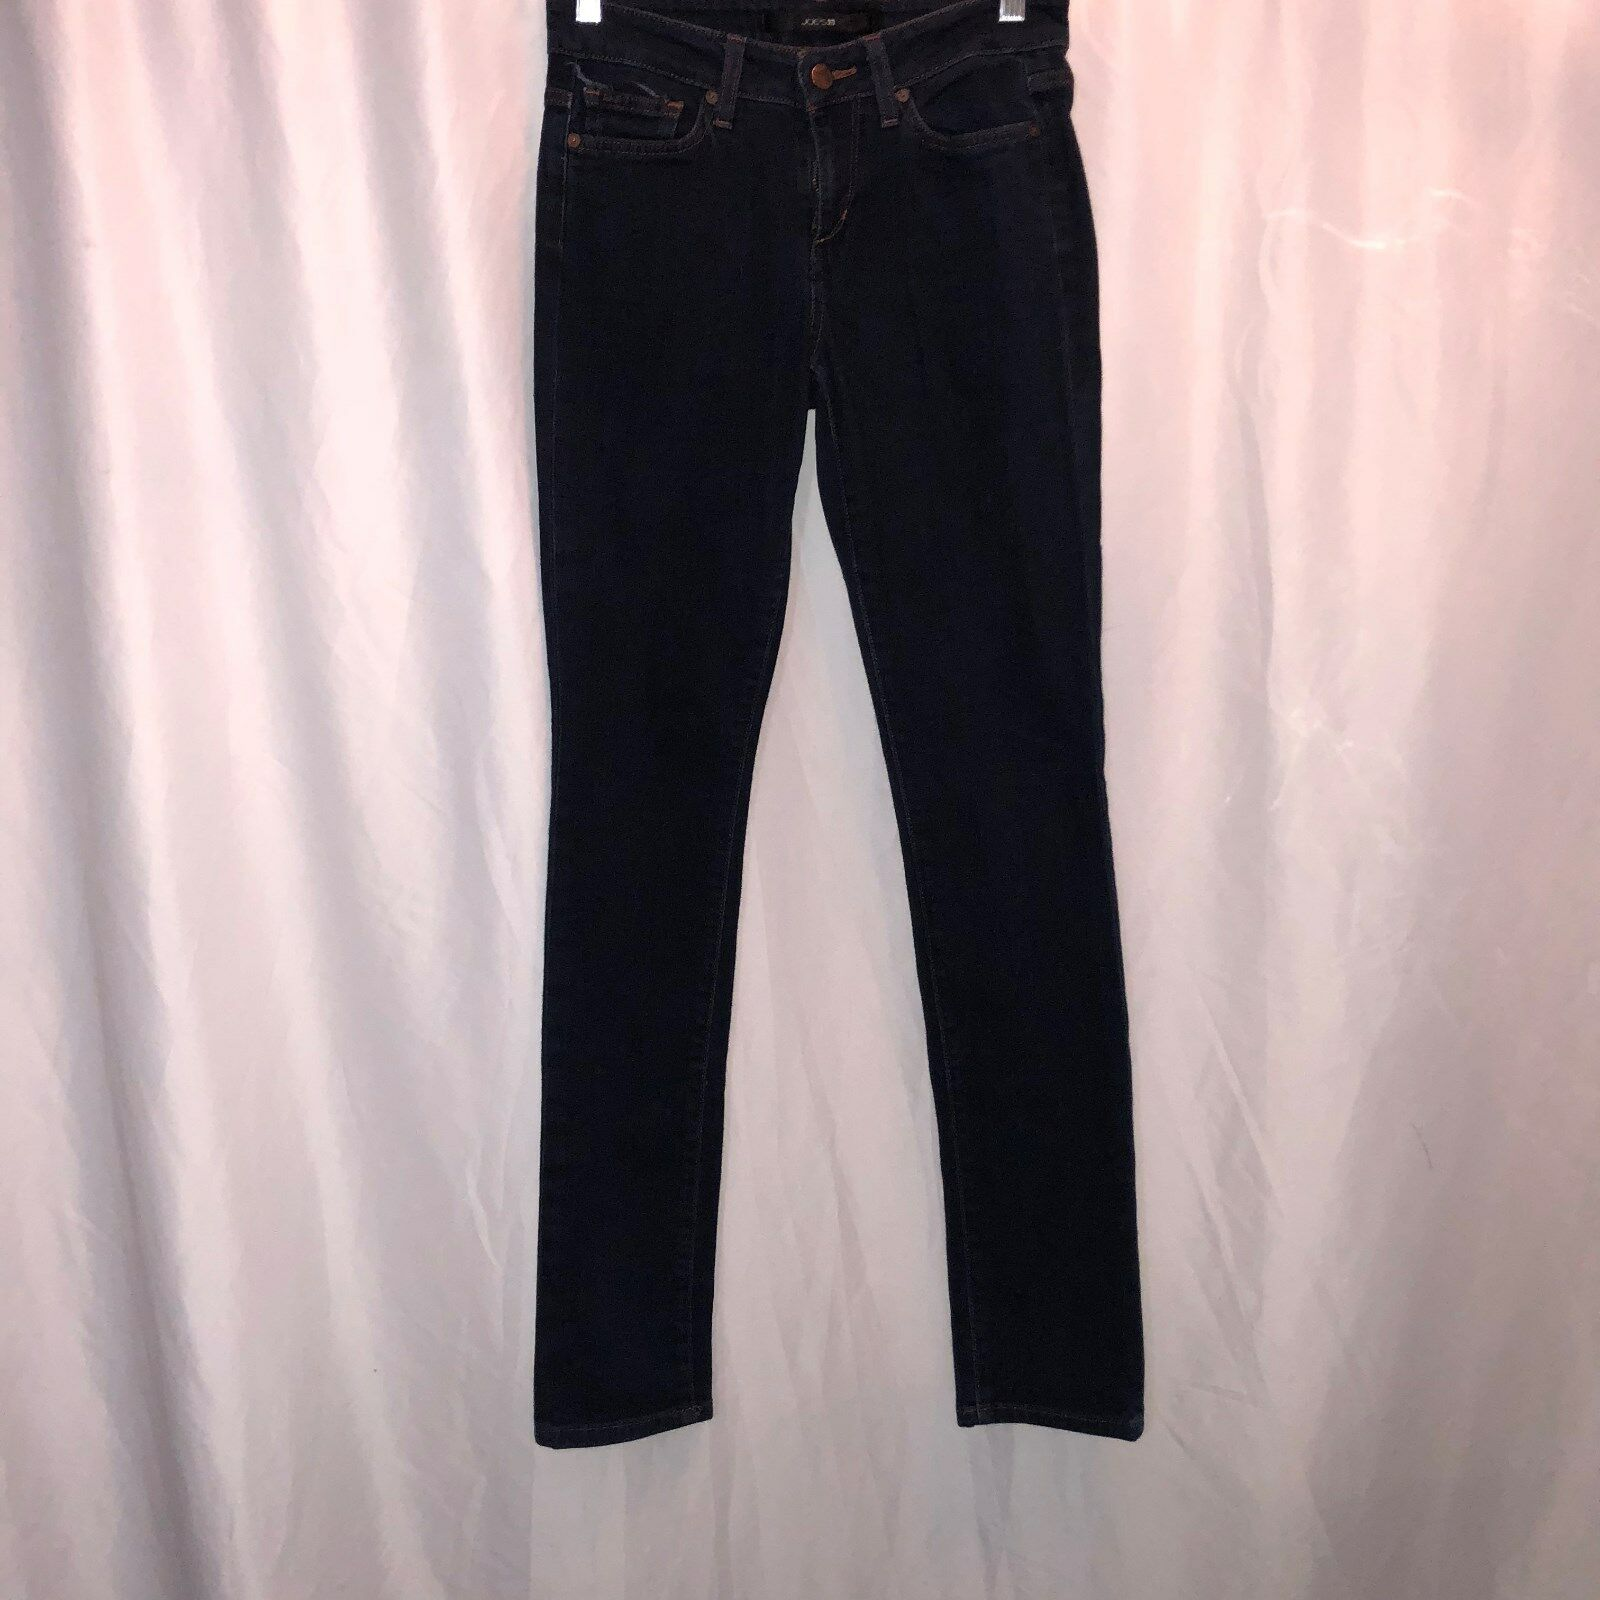 B2-0377 Joes Jeans Skinny Visionaire Size W24